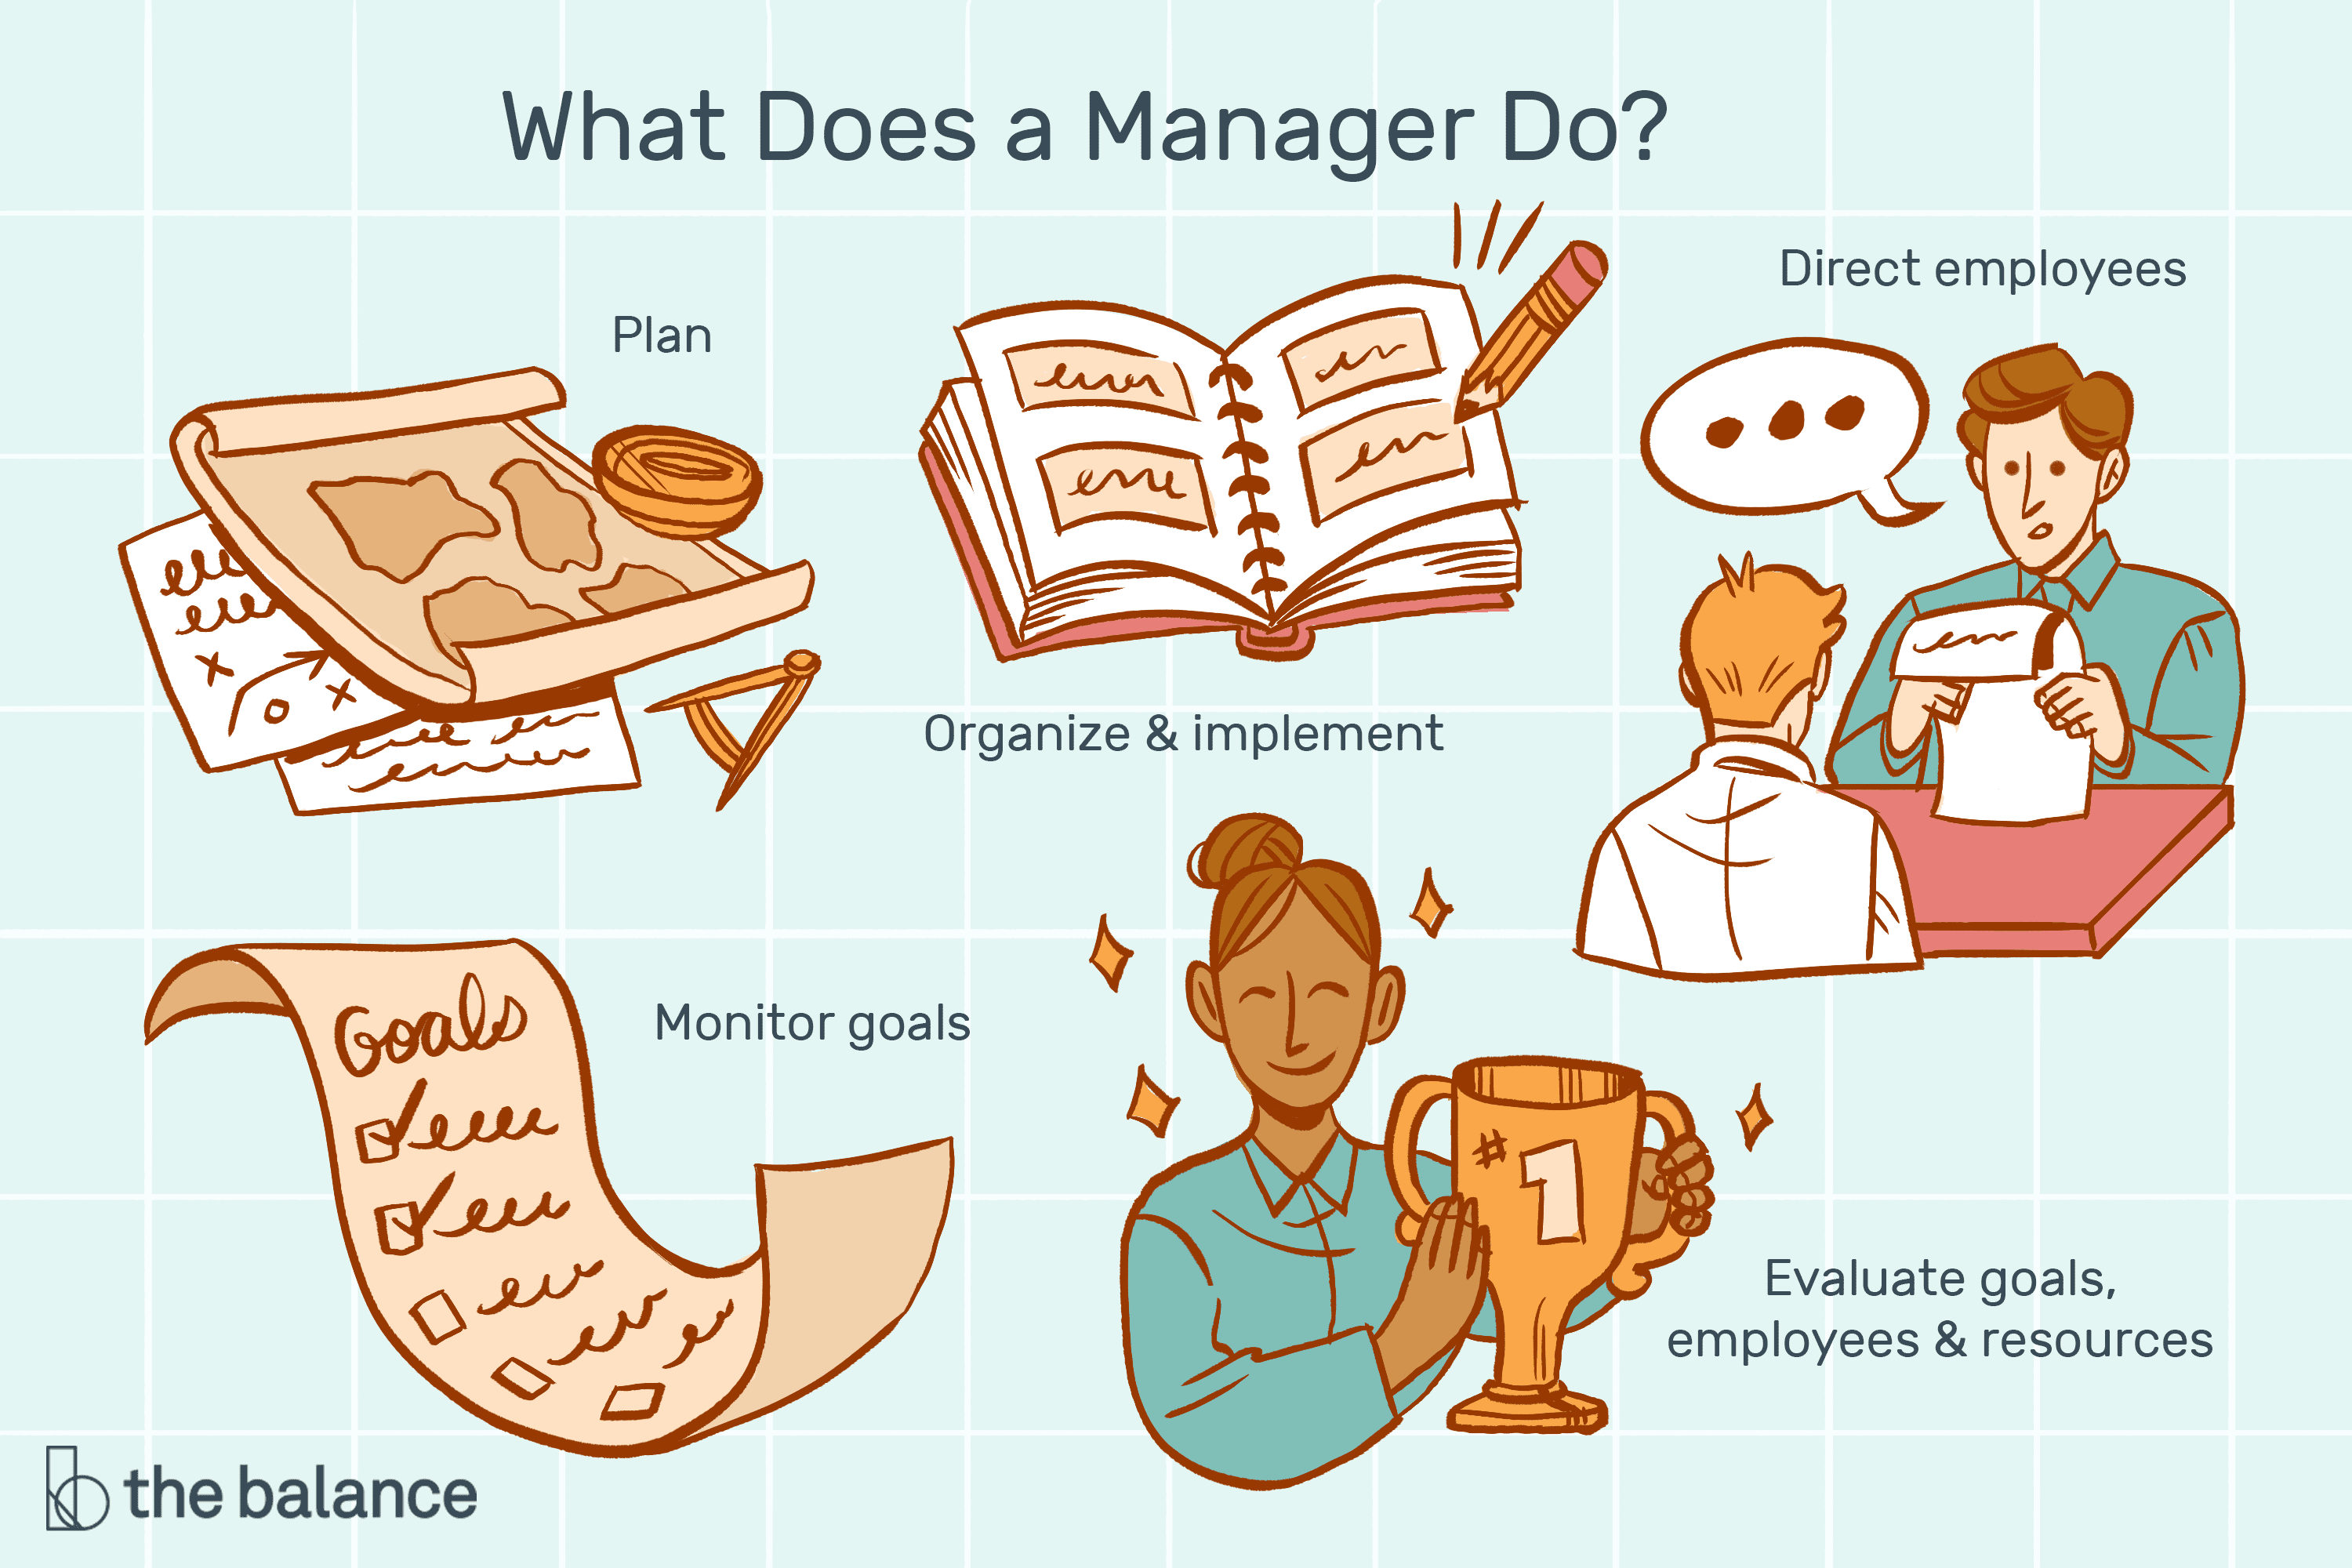 Manager Job Description: Salary, Skills, & More